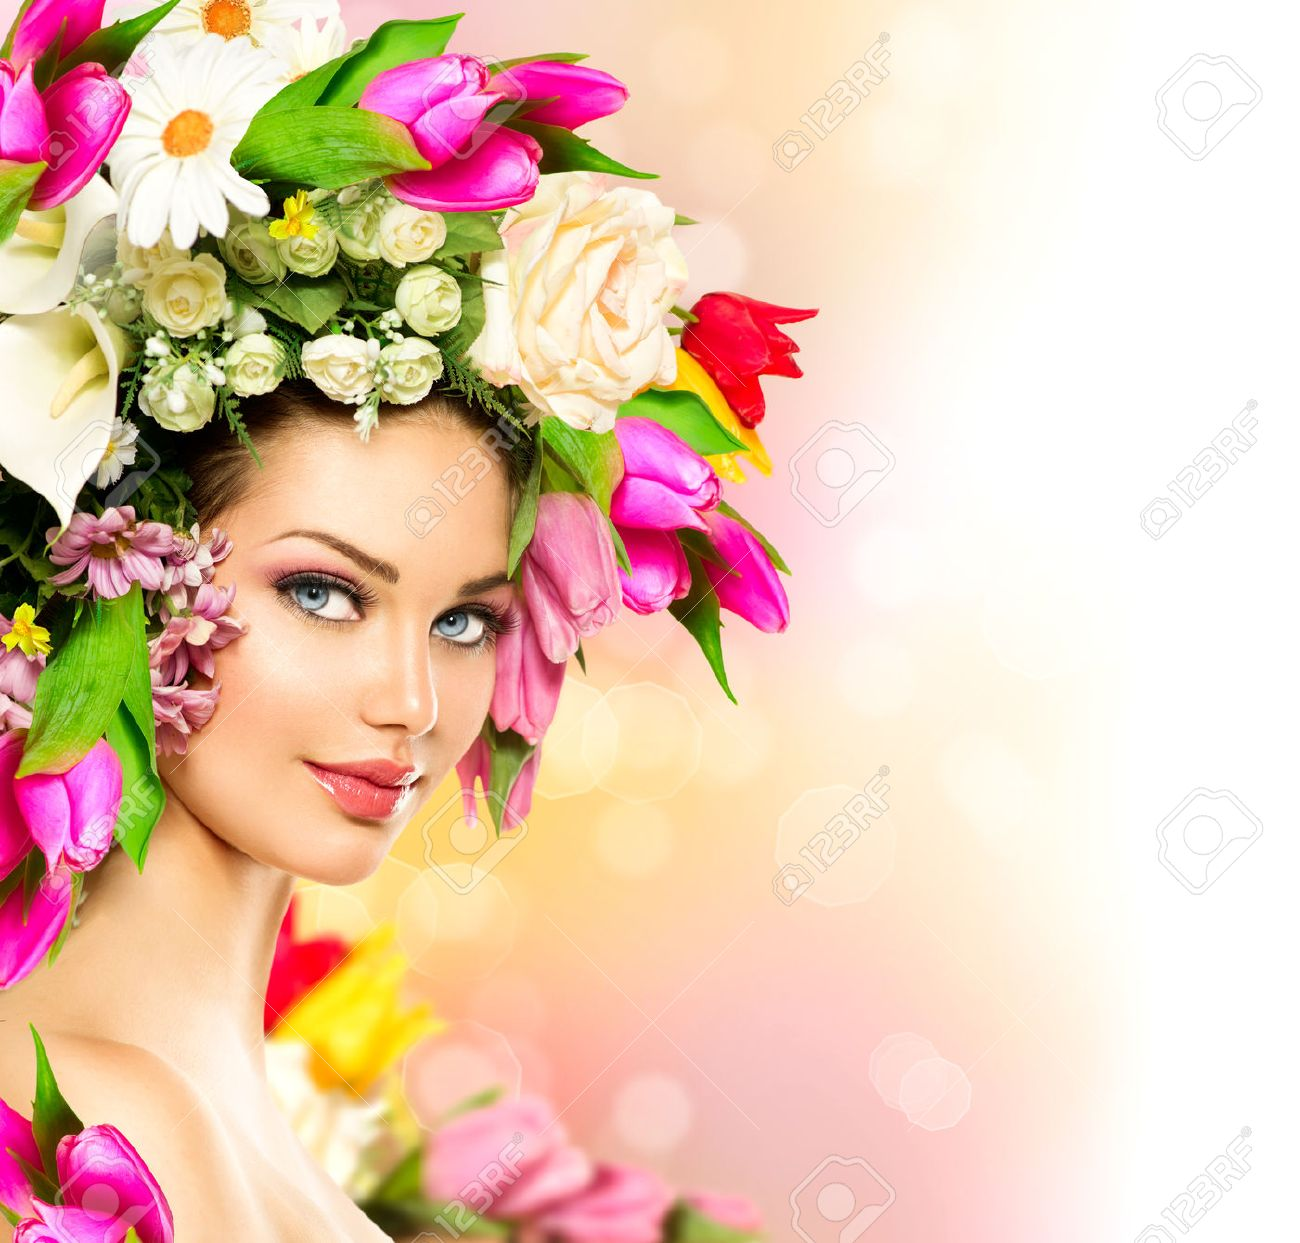 Uncategorized Model Flower beauty summer model girl with colorful flowers hairstyle stock photo 27396581